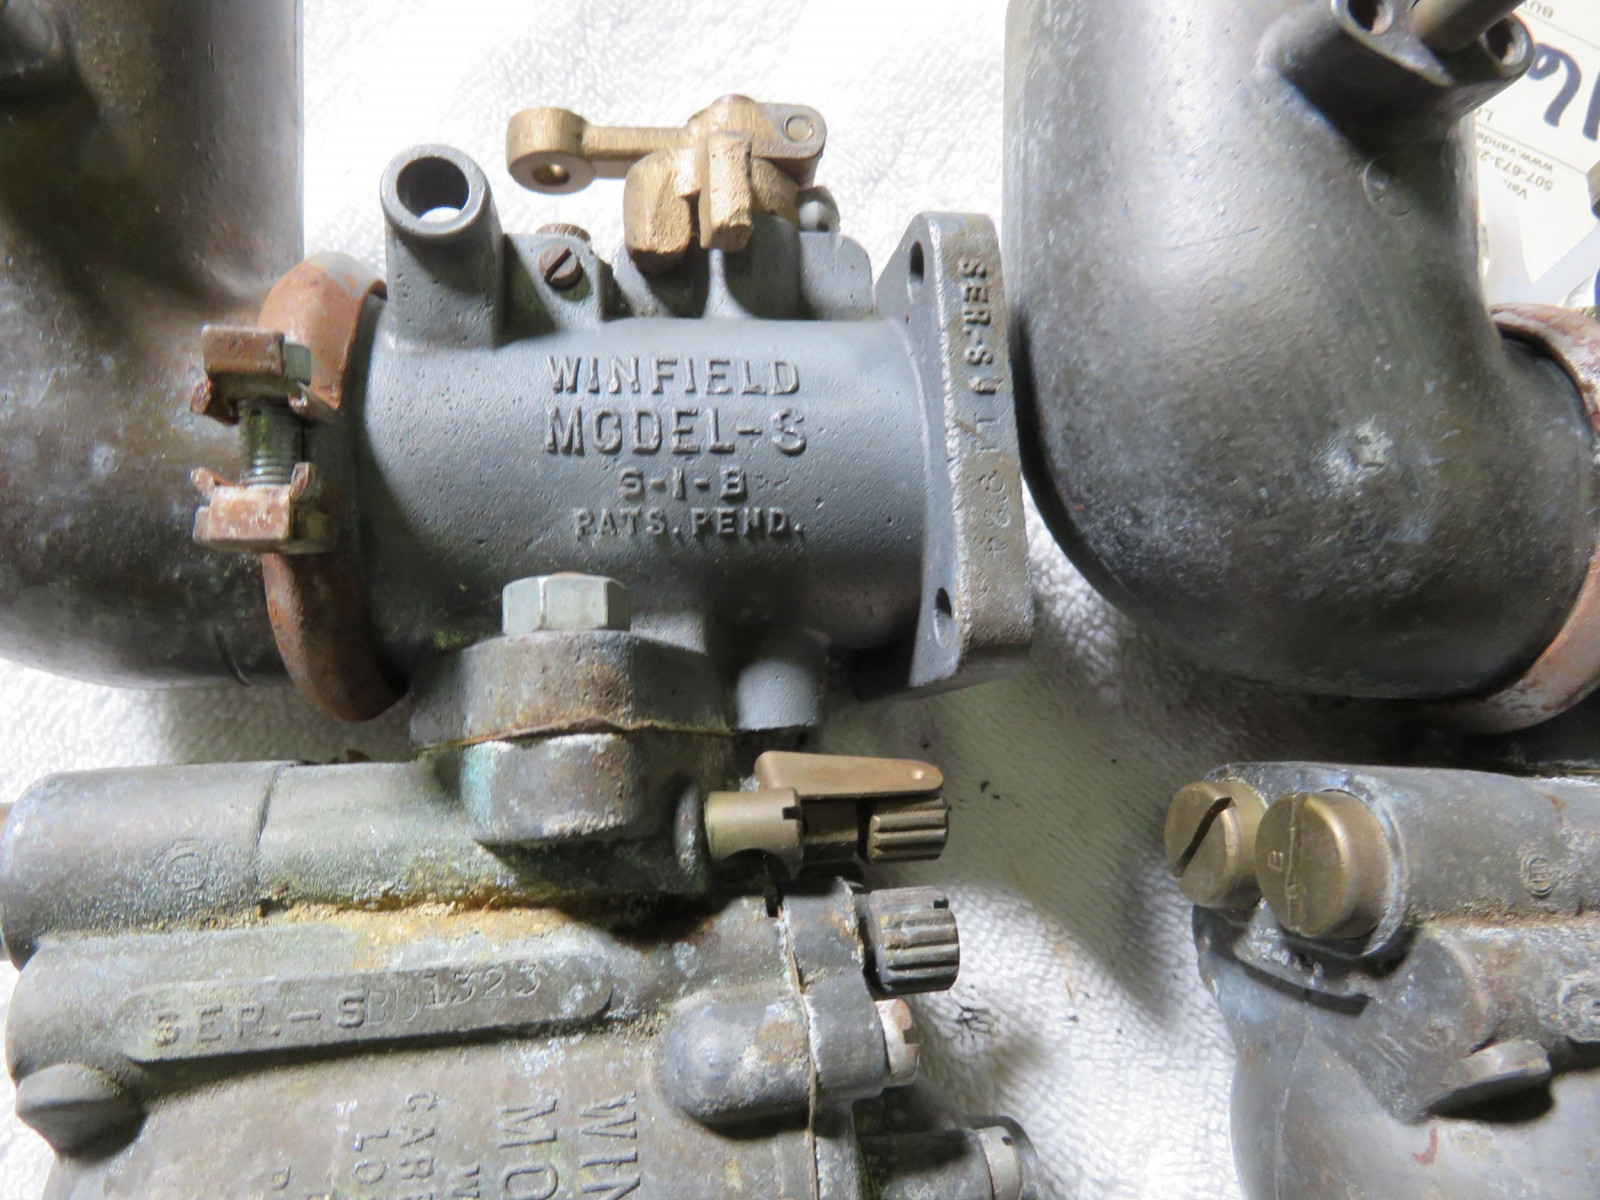 Rare Winfield Model S Carburetors - Image 2